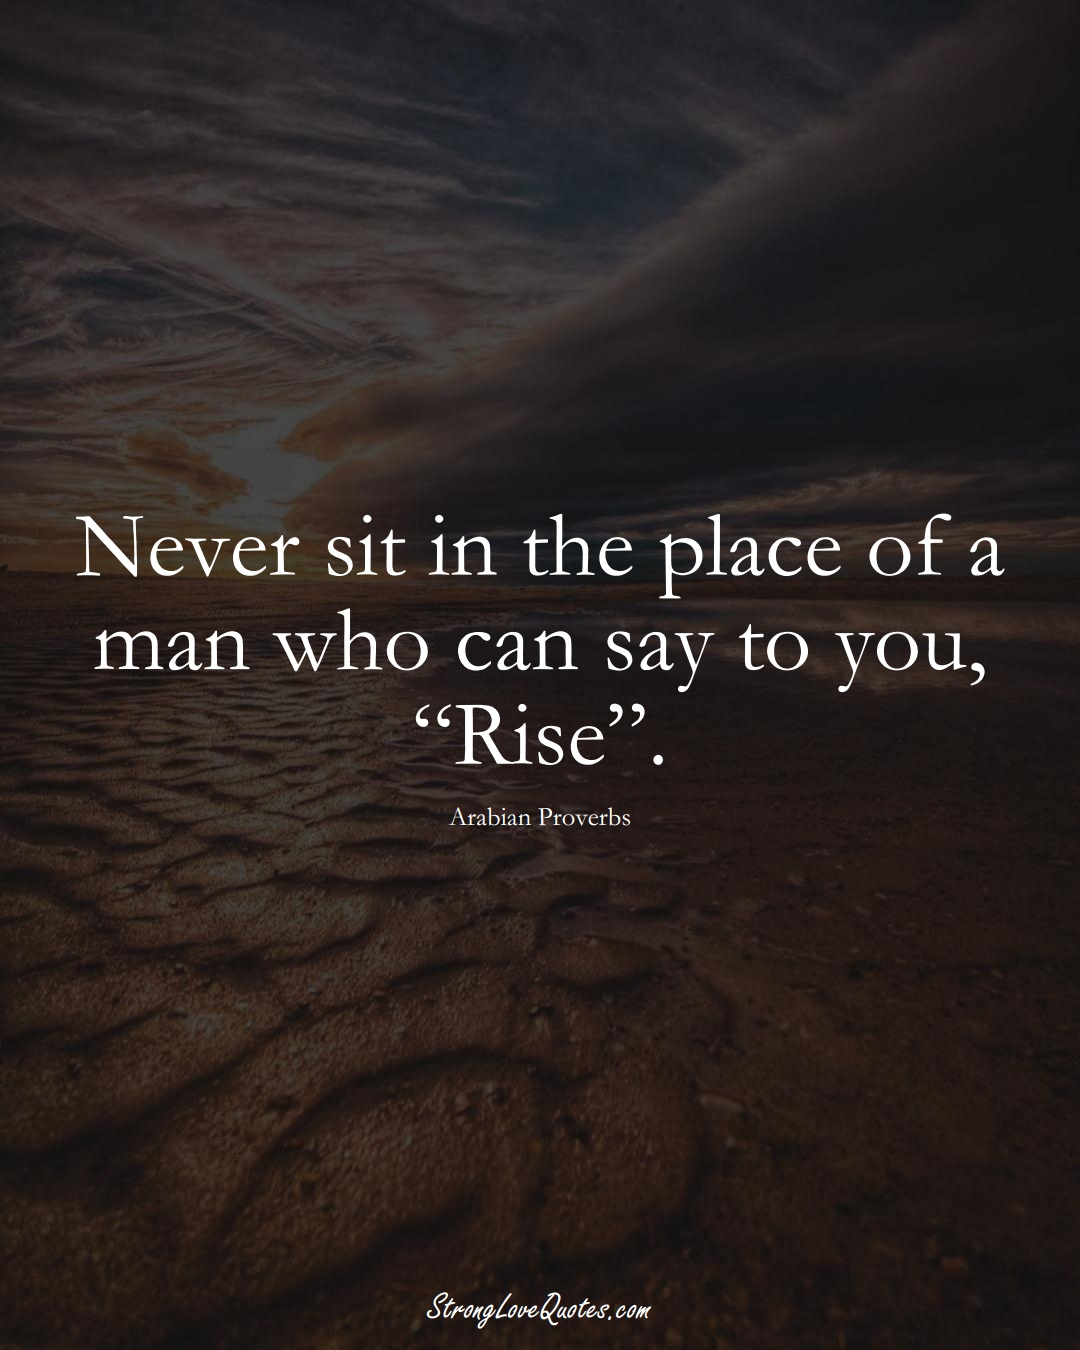 """Never sit in the place of a man who can say to you, """"Rise"""". (Arabian Sayings);  #aVarietyofCulturesSayings"""